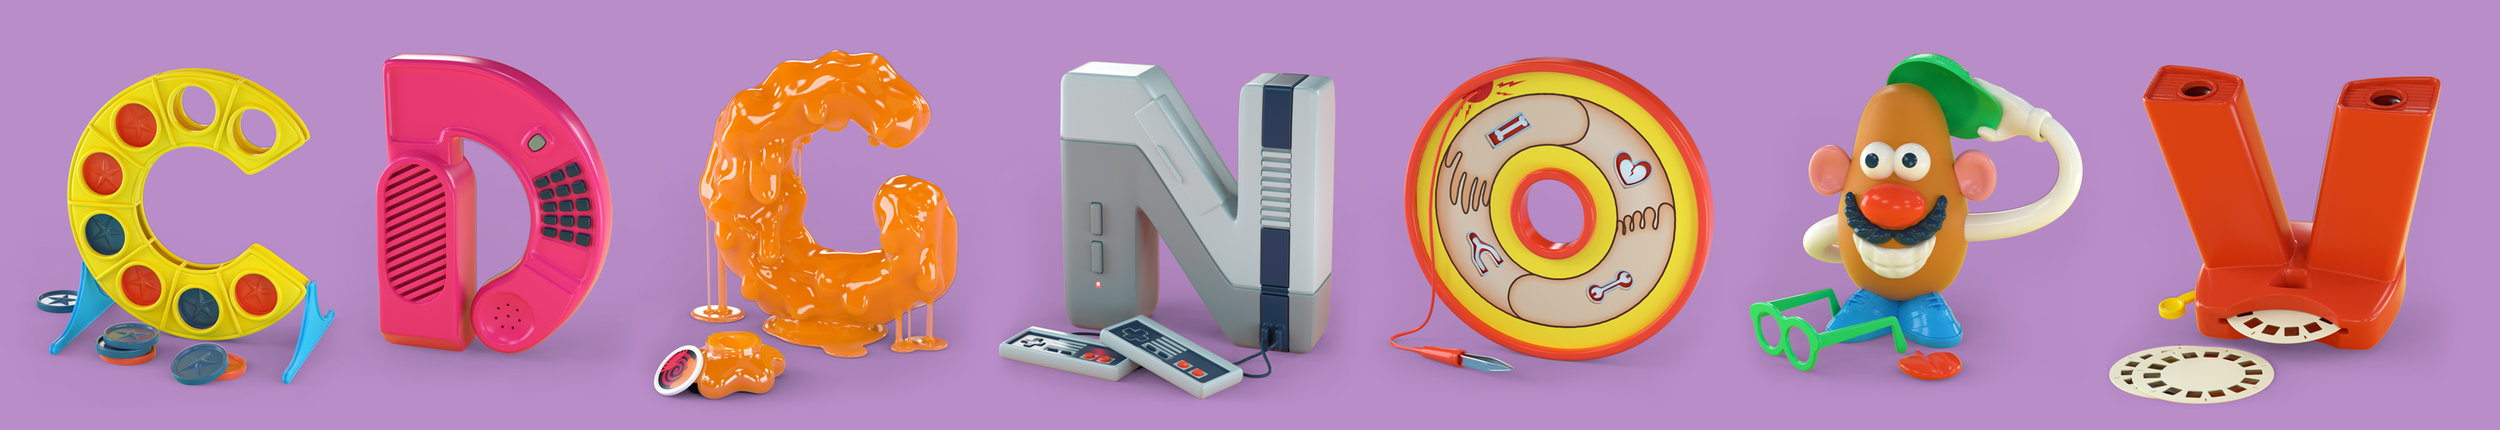 90s TOYpography 3D type nostalgic alphabet by Noah Camp